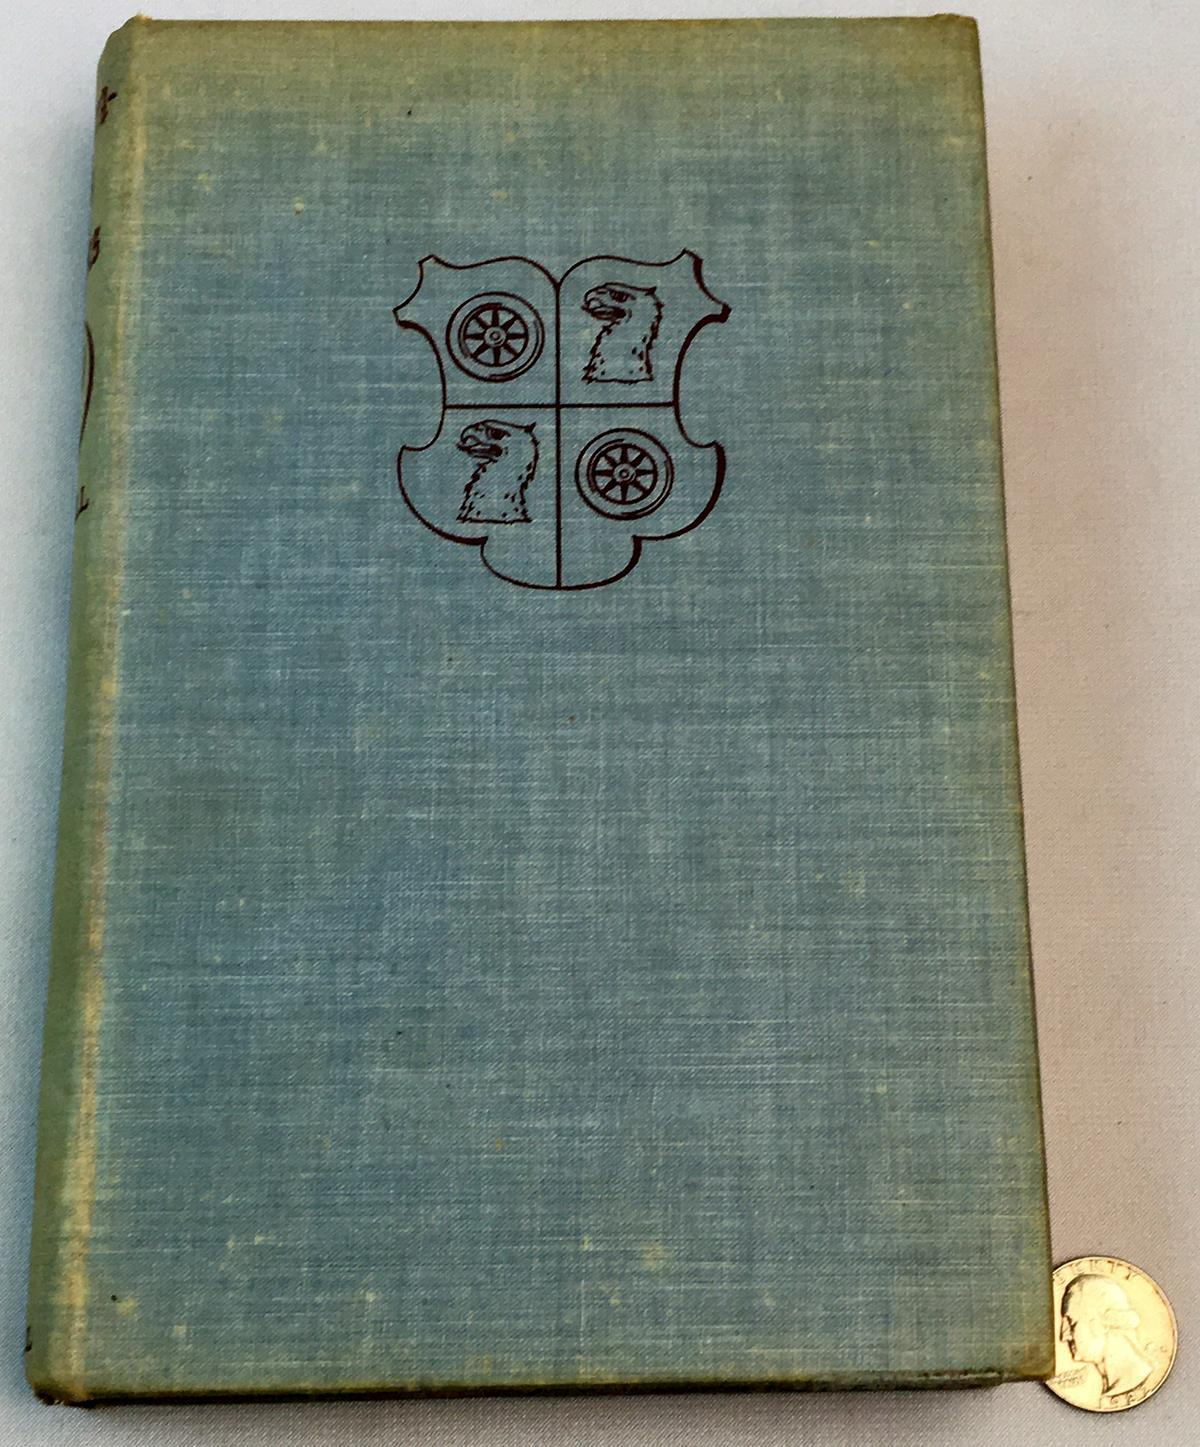 1941 Nostradamus Speaks by Rolfe Boswell FIRST EDITION